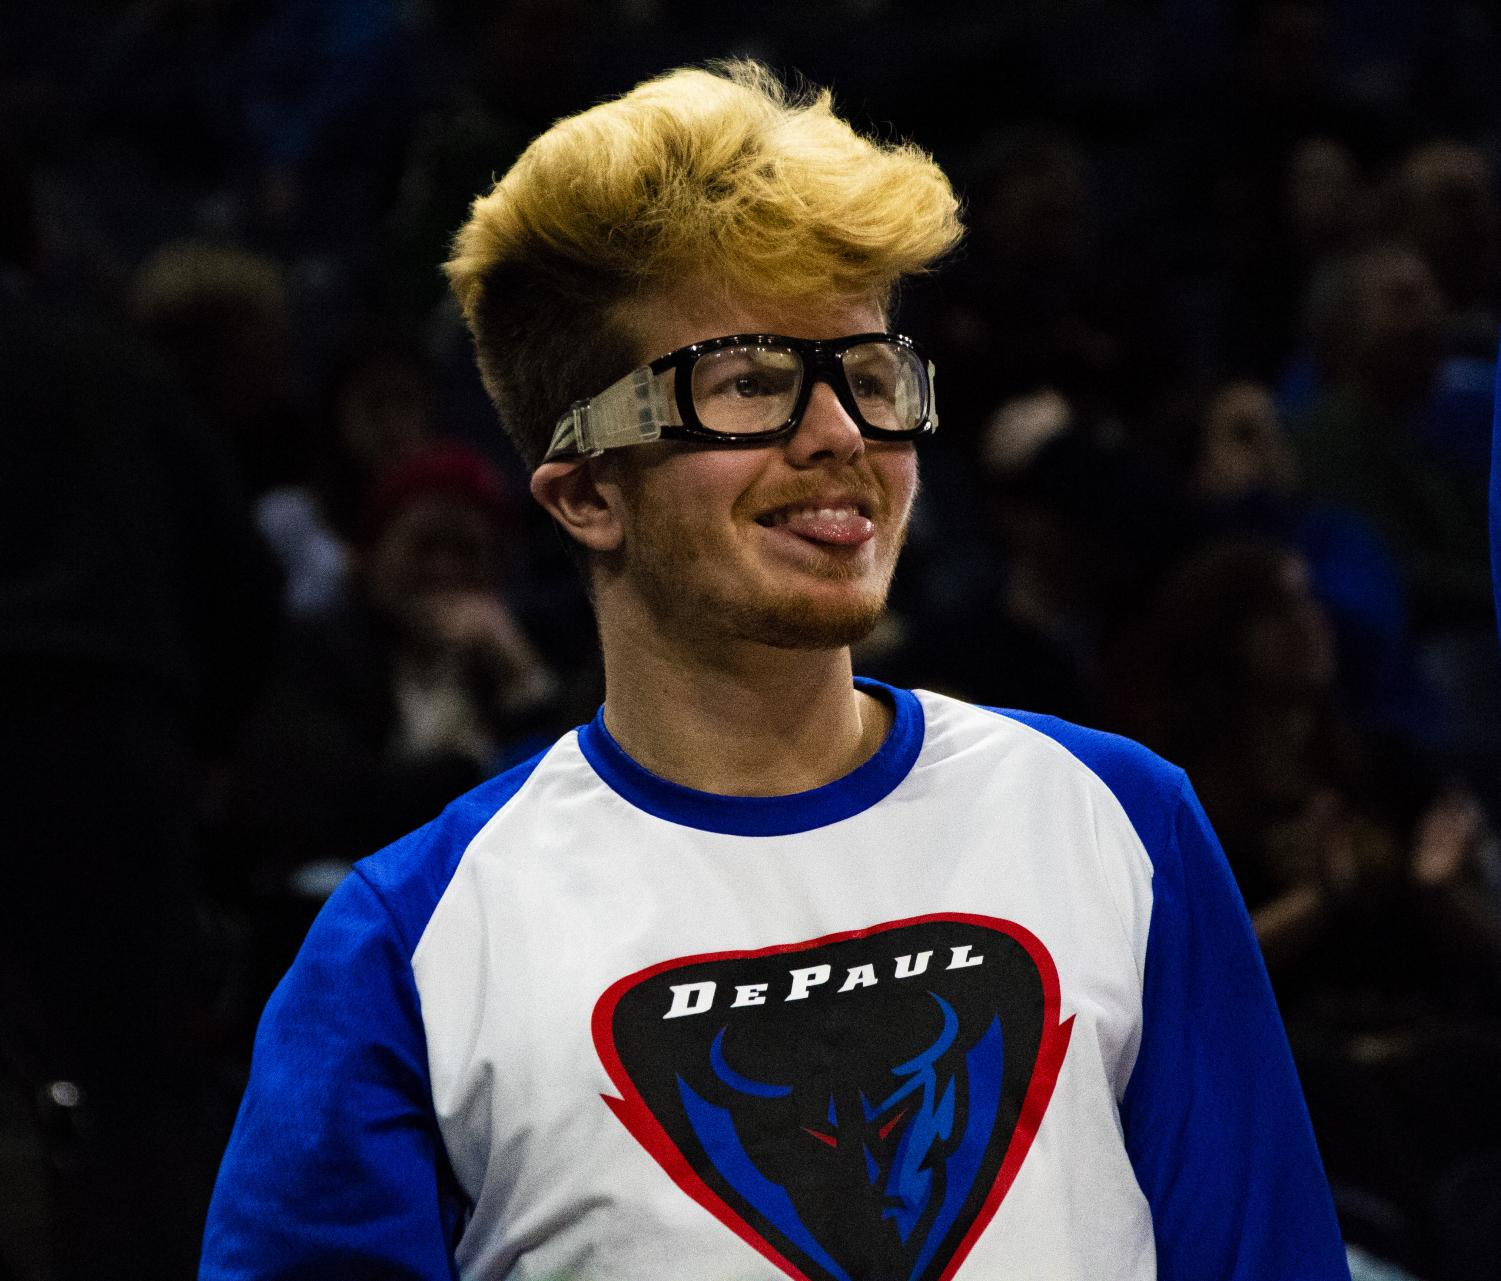 Pantelis Xidias has gained notoriety for his unique antics on DePaul's bench. Richard Bodee I The DePaulia